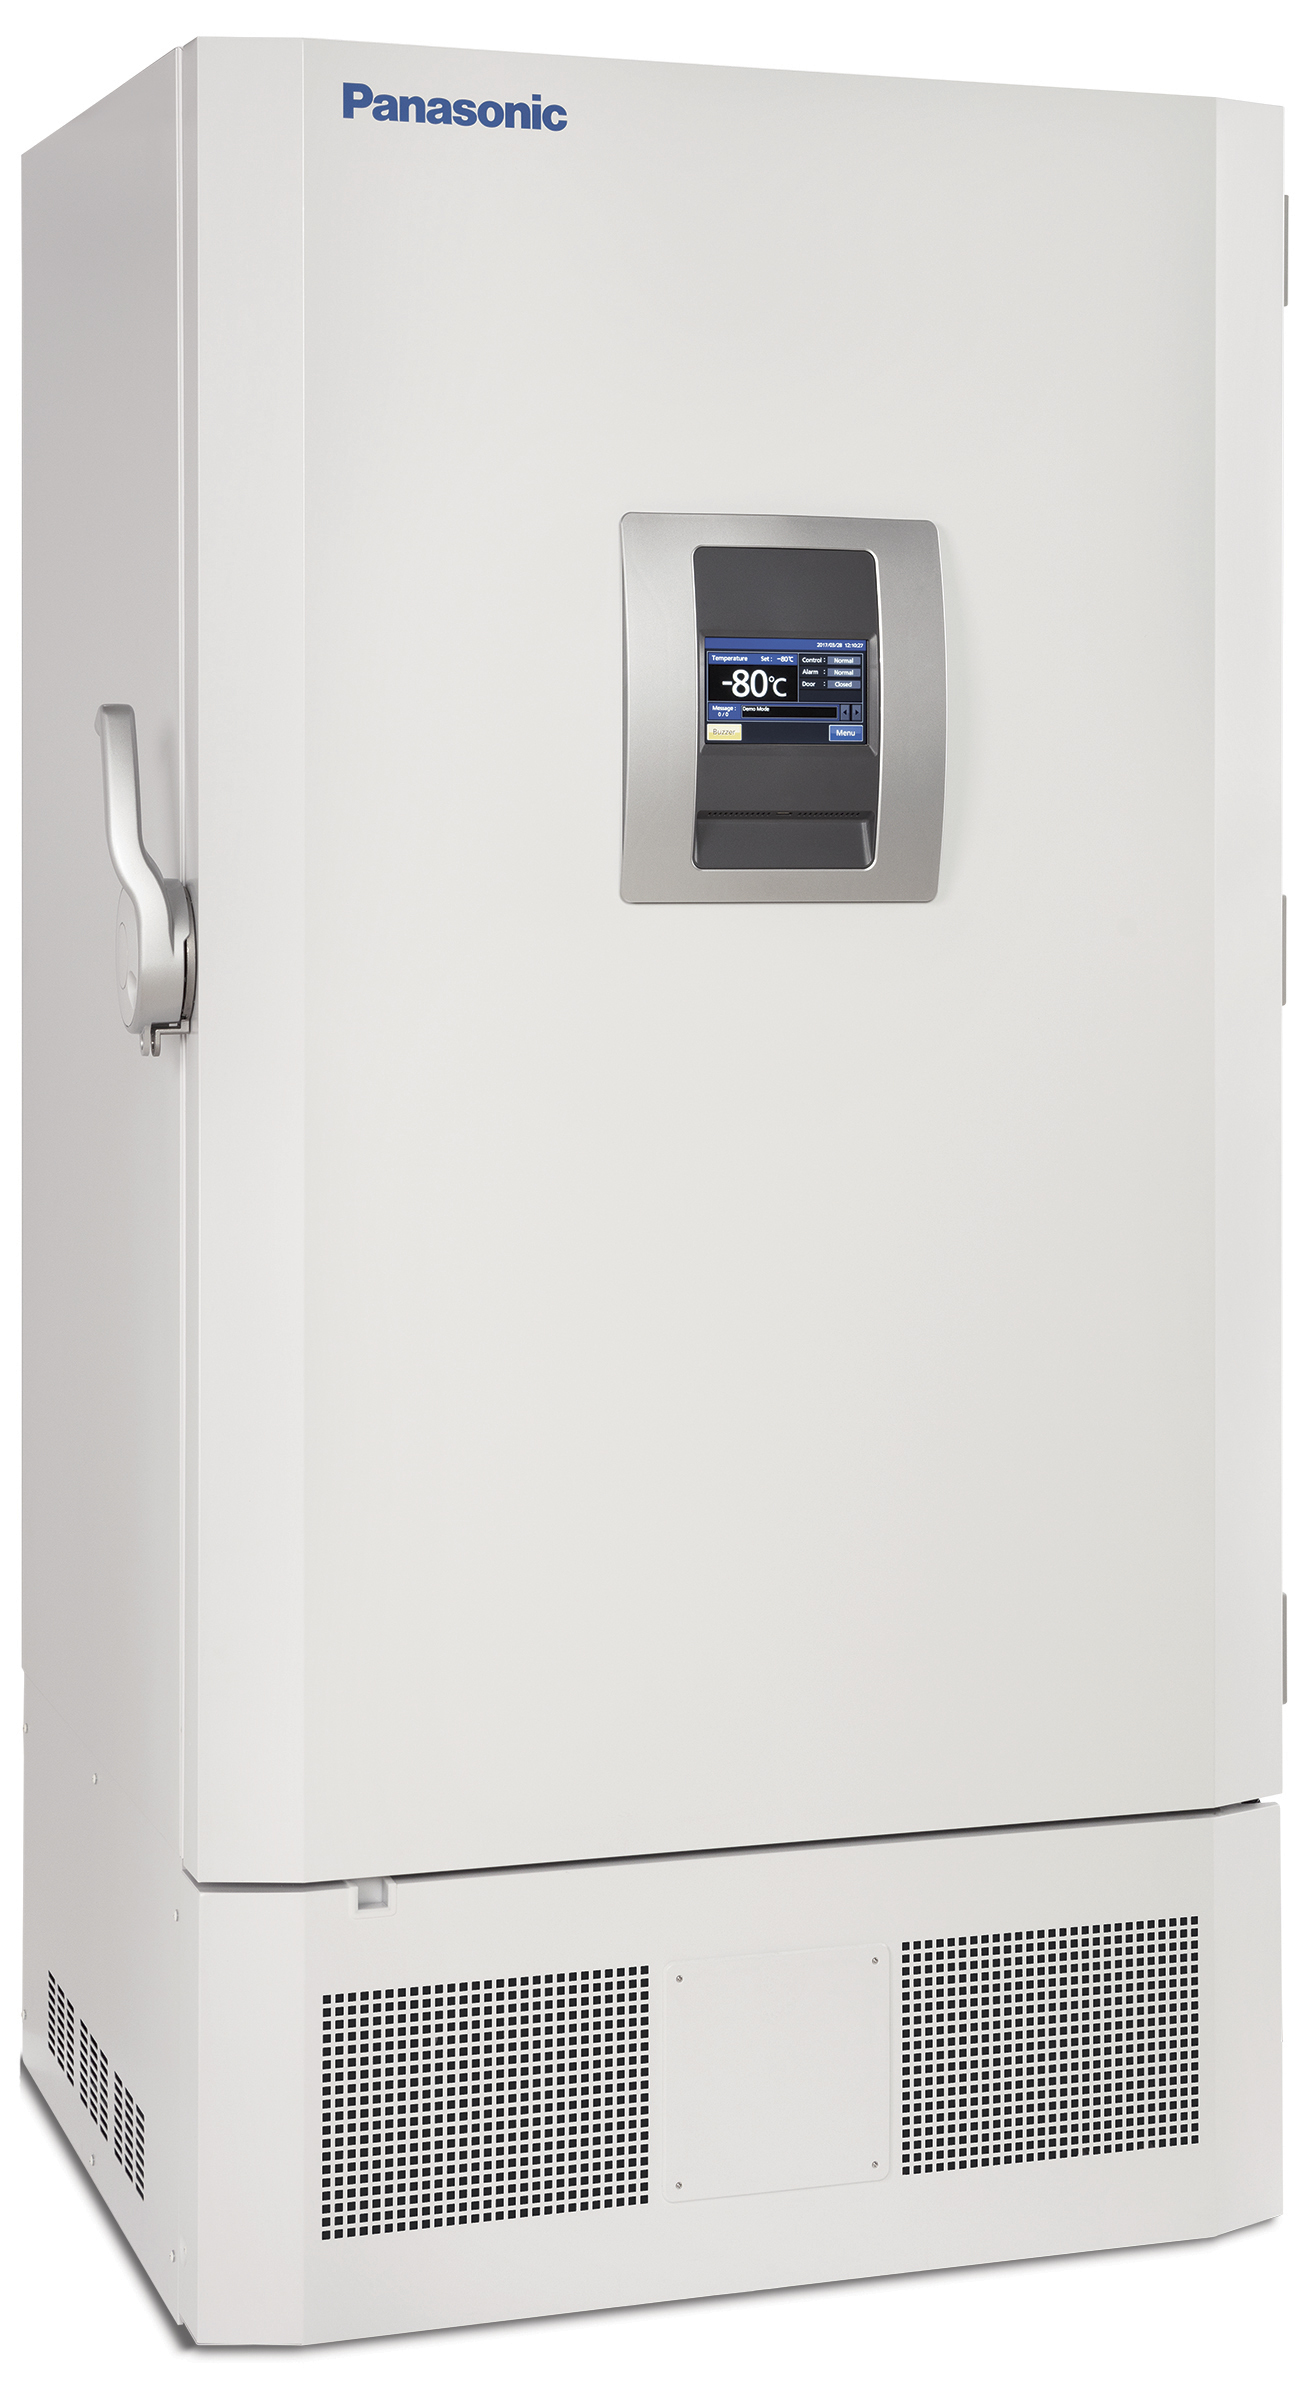 Panasonic Healthcare TwinGuard -86˚C freezers are available in two upright cabinet sizes of 18.6 cu.ft. and 25.8 cu.ft. (shown). (Photo: Business Wire)